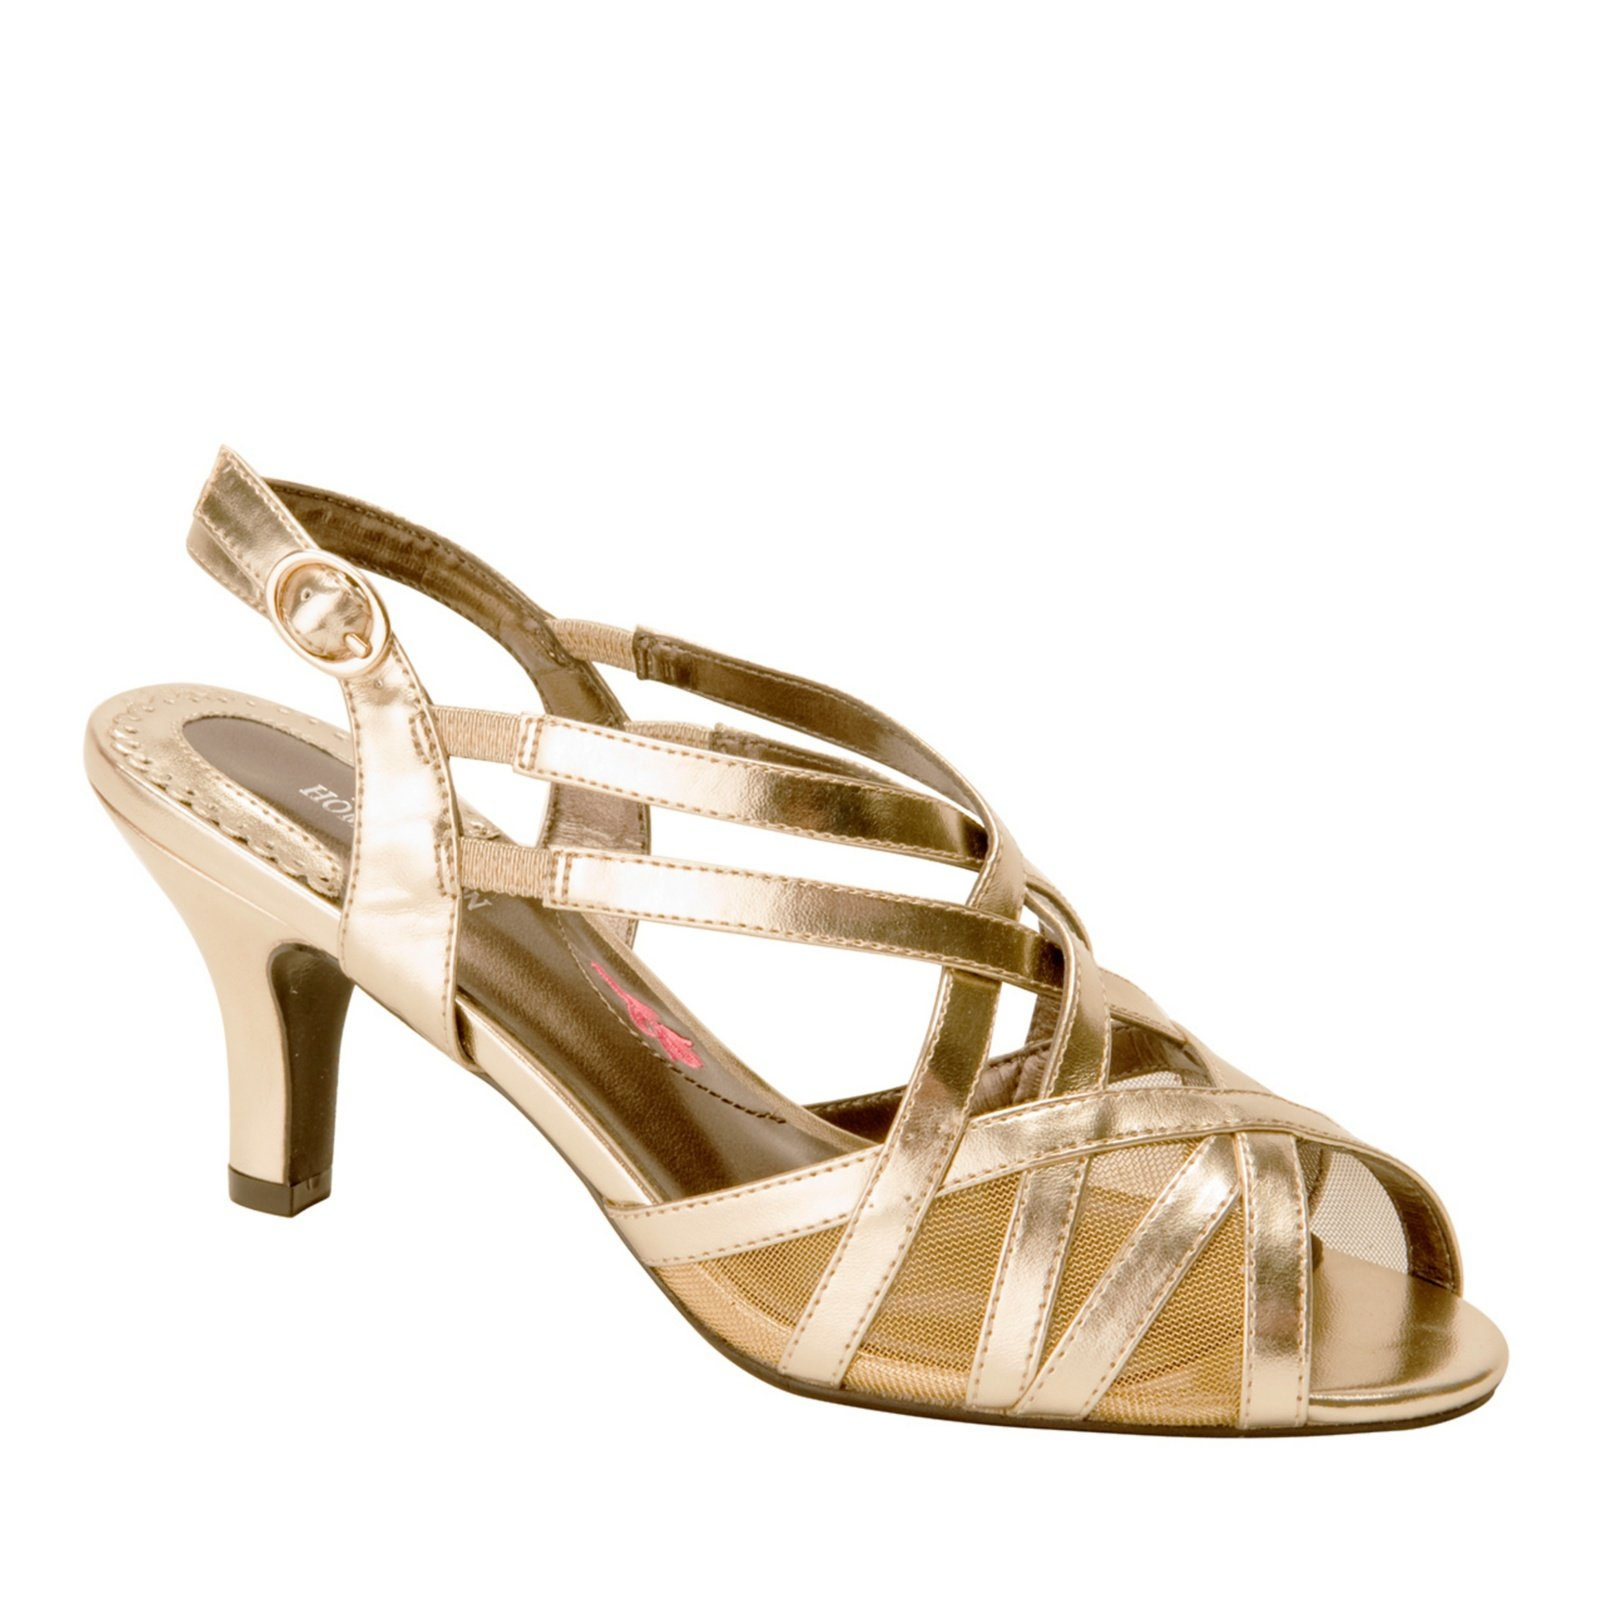 Ros Hommerson Women's Lacey Sandals,Gold,7.5 WW